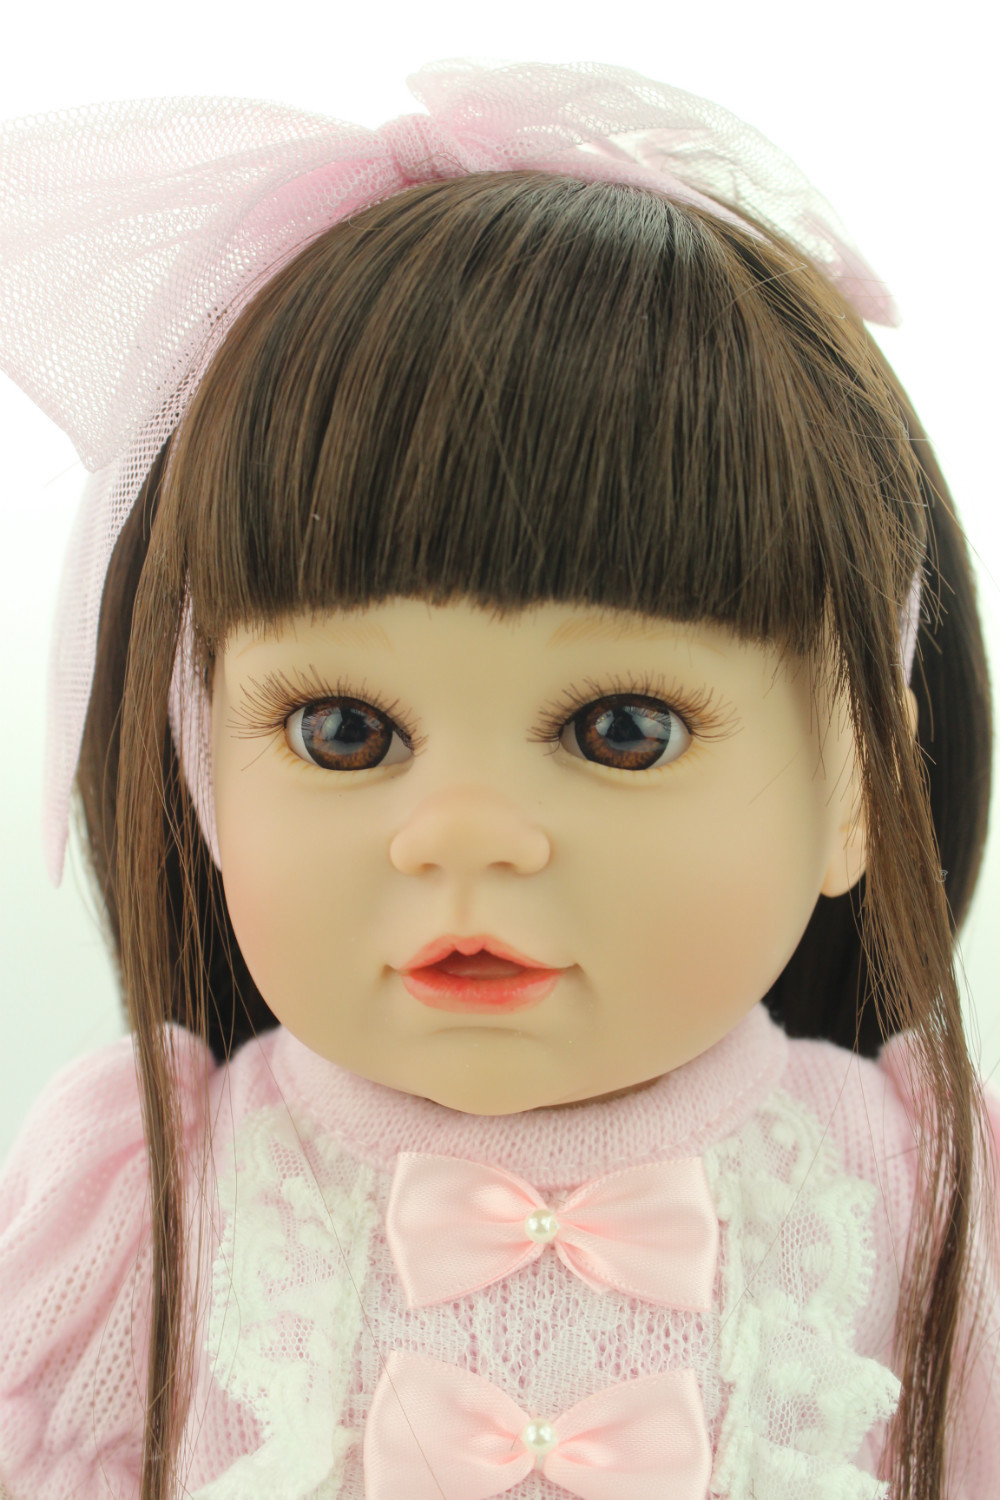 New model Style 16 inches Baby Doll Fat American Girl Design Reborn Living doll Soft Solid Silicone Toys(China (Mainland))